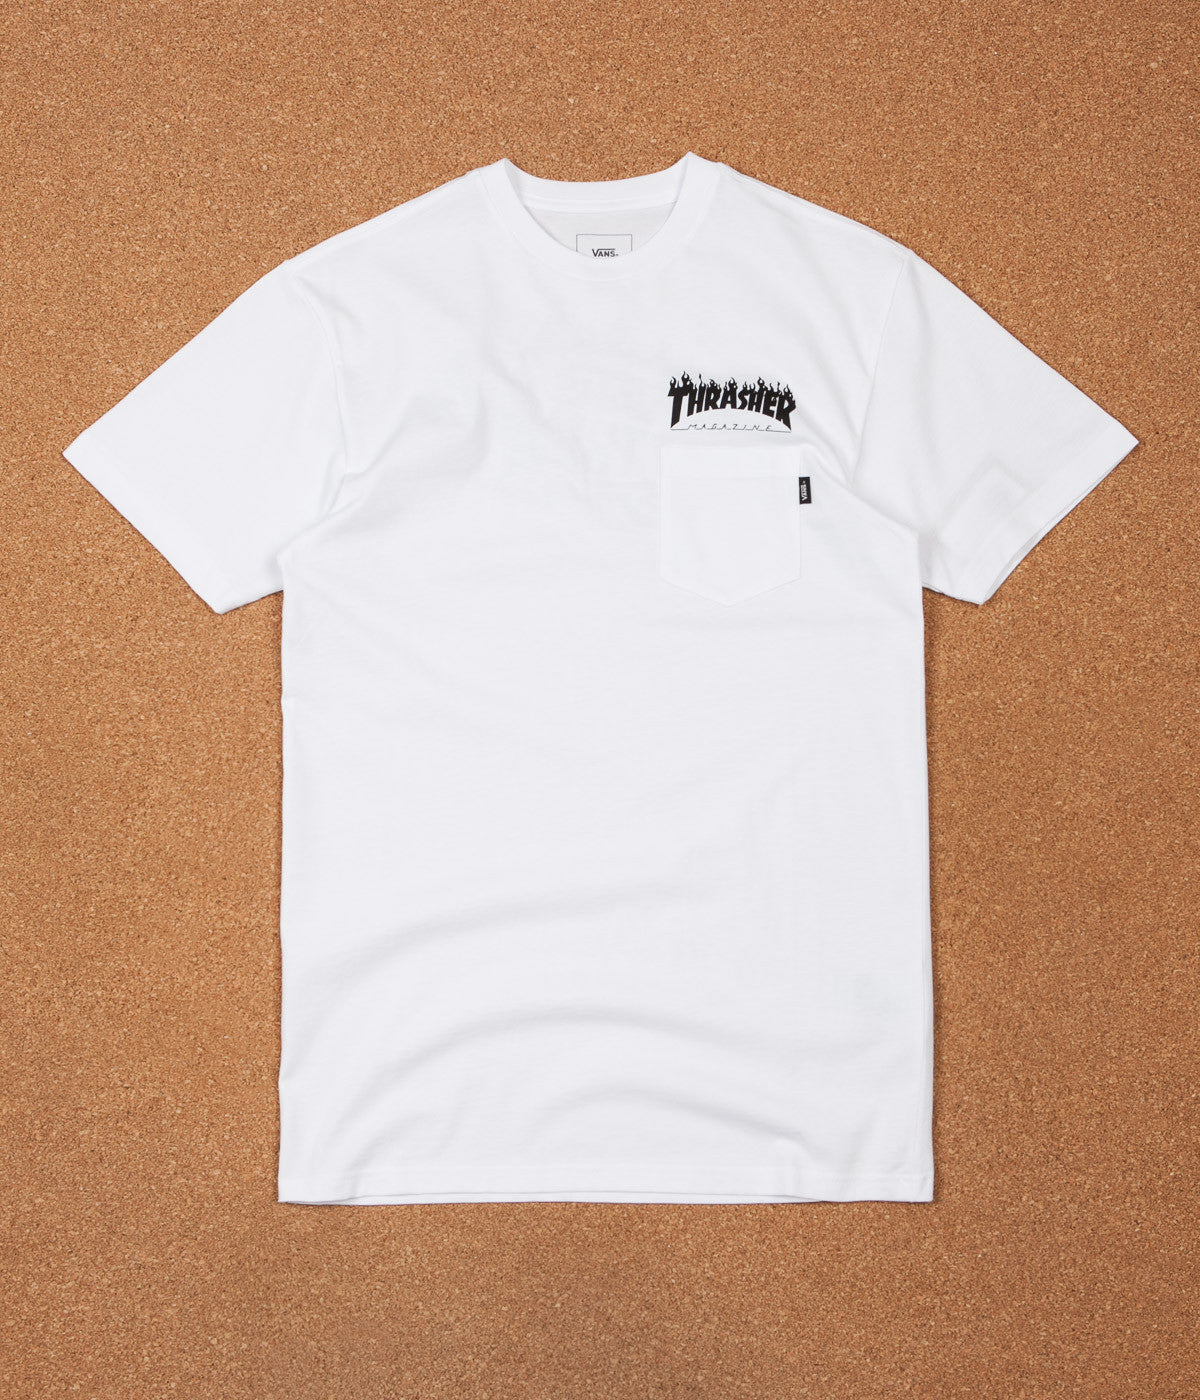 5af2b47978 Vans X Thrasher Pocket T-Shirt - White